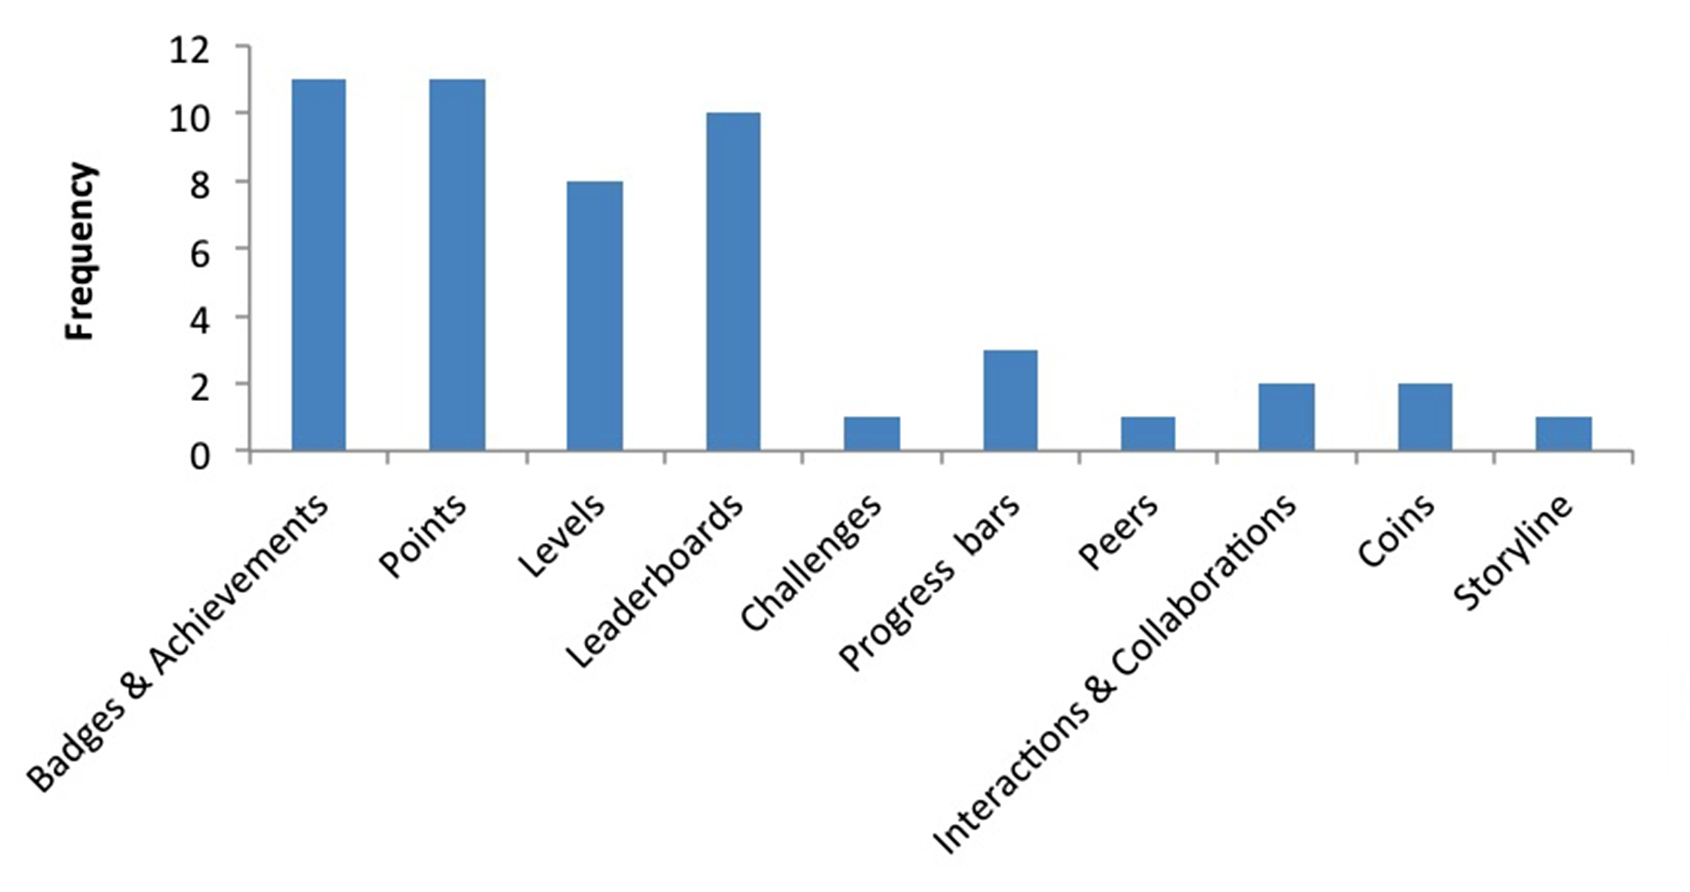 A bar chart displaying the frequency of gamified elements reported in studies